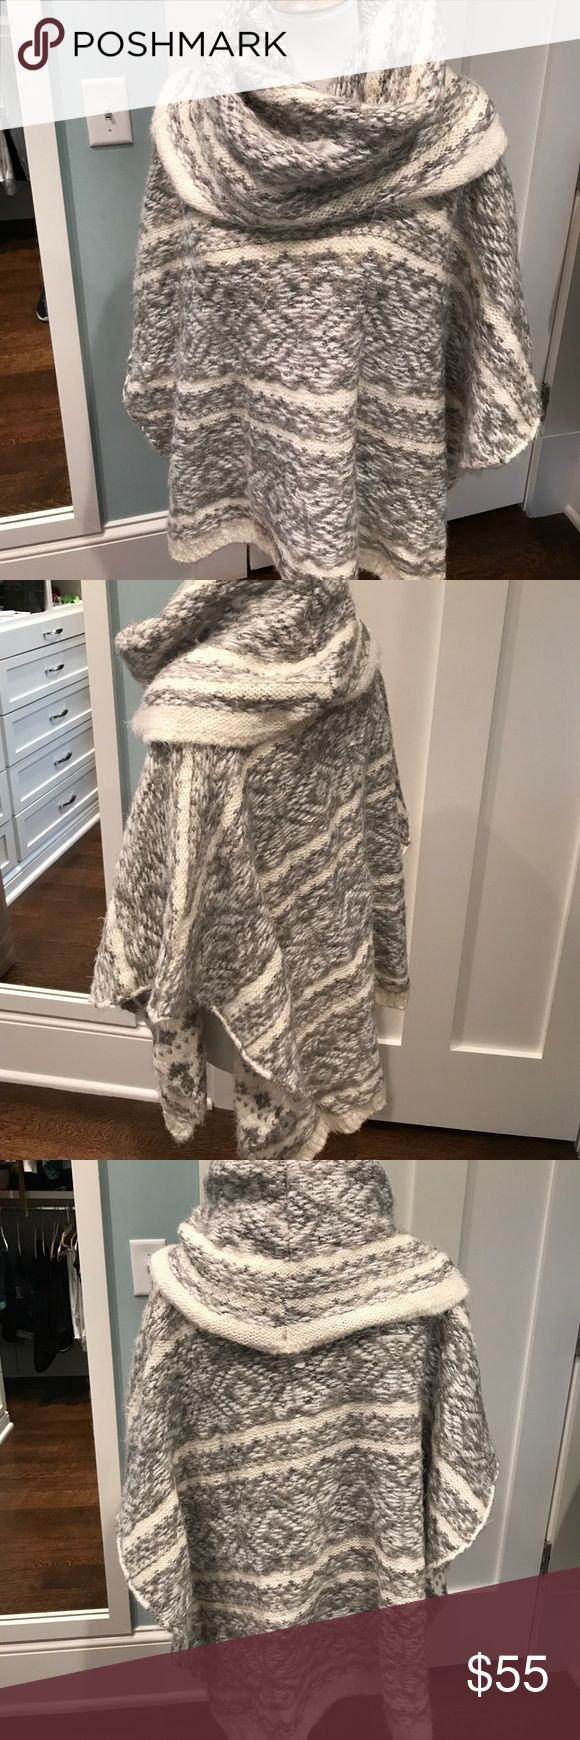 Spectacular, sweater cape with cowl neck. Grey and cream sweater cape. Acrylic, wool and polyester. Very soft and drapes beautifully. Karlie Jackets & Coats Capes